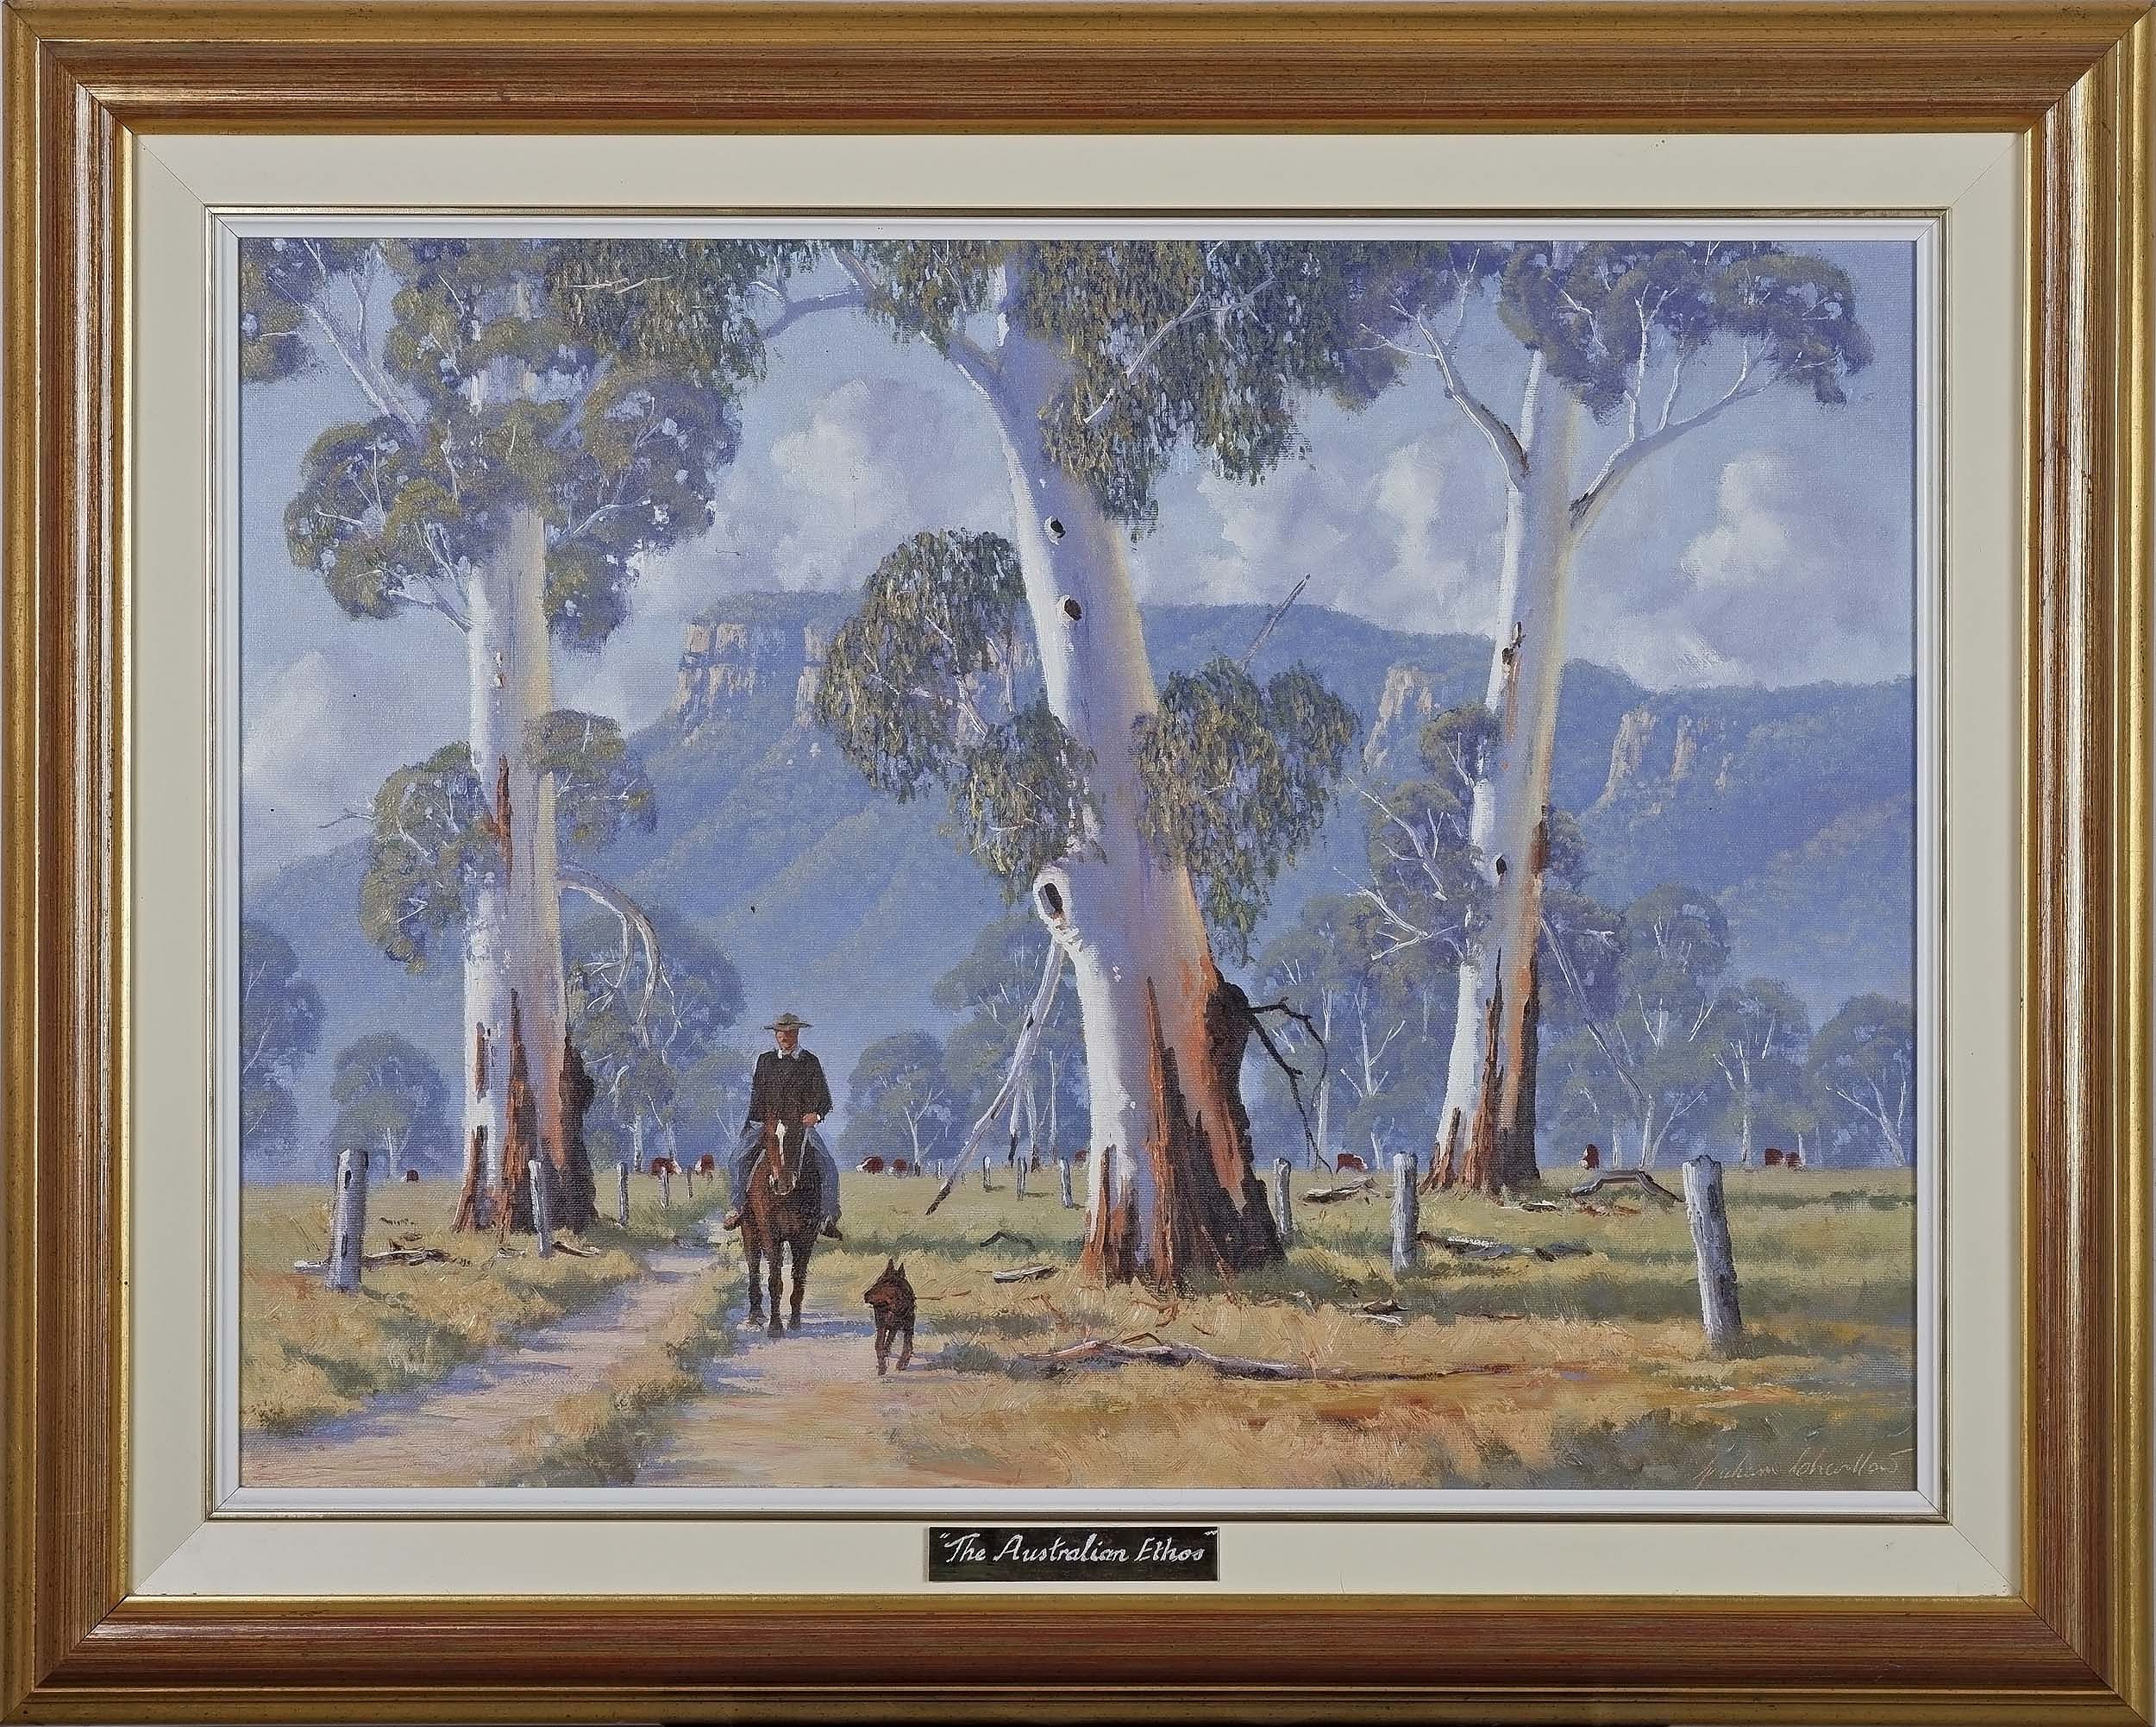 'Graham Charlton (1940-) The Australian Ethos, Oil on Canvas Board'